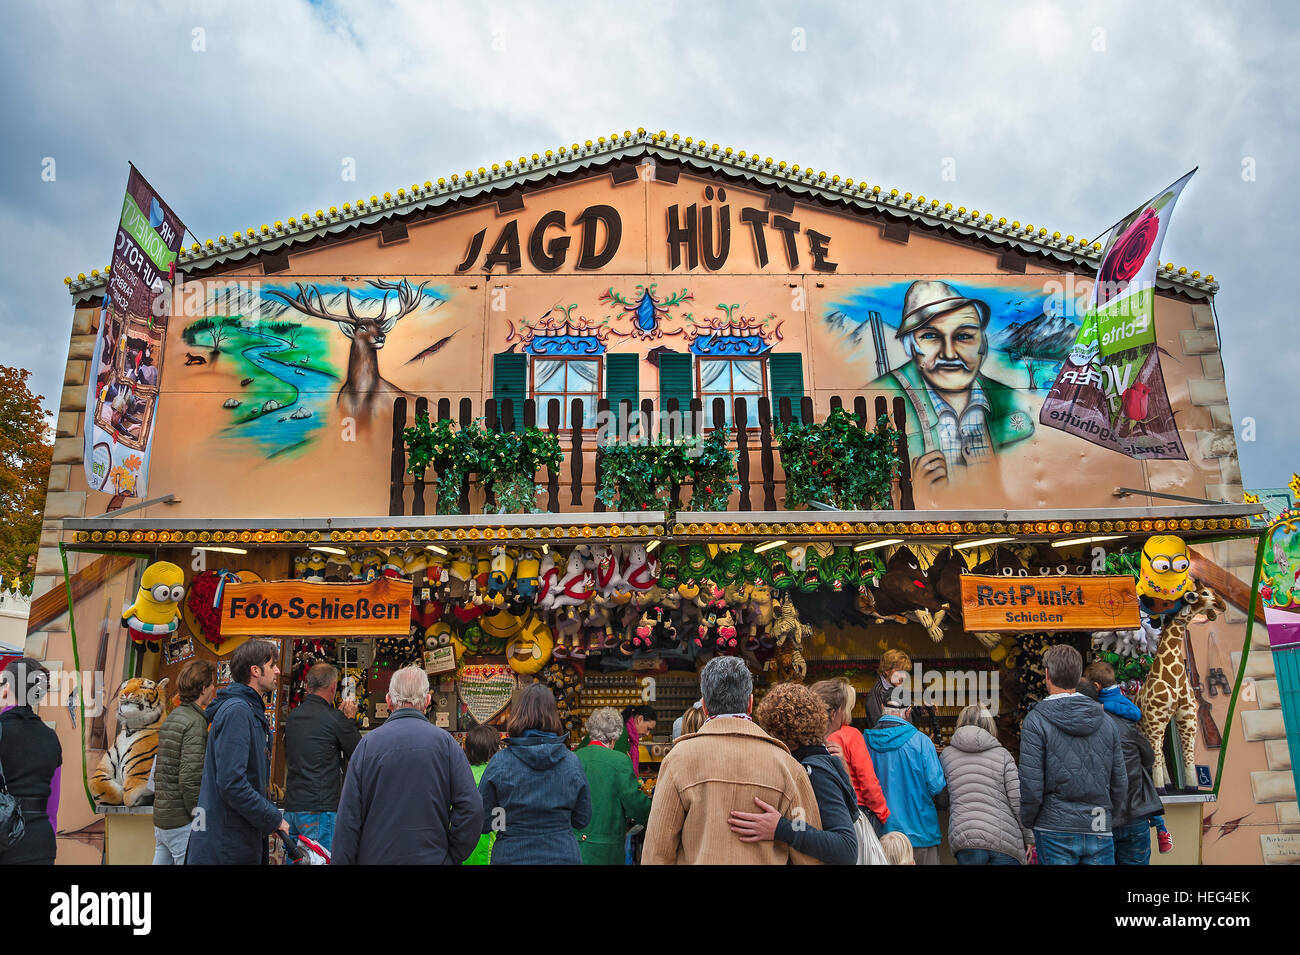 Shooting gallery, Auer Dult, Munich, Bavaria, Germany - Stock Image